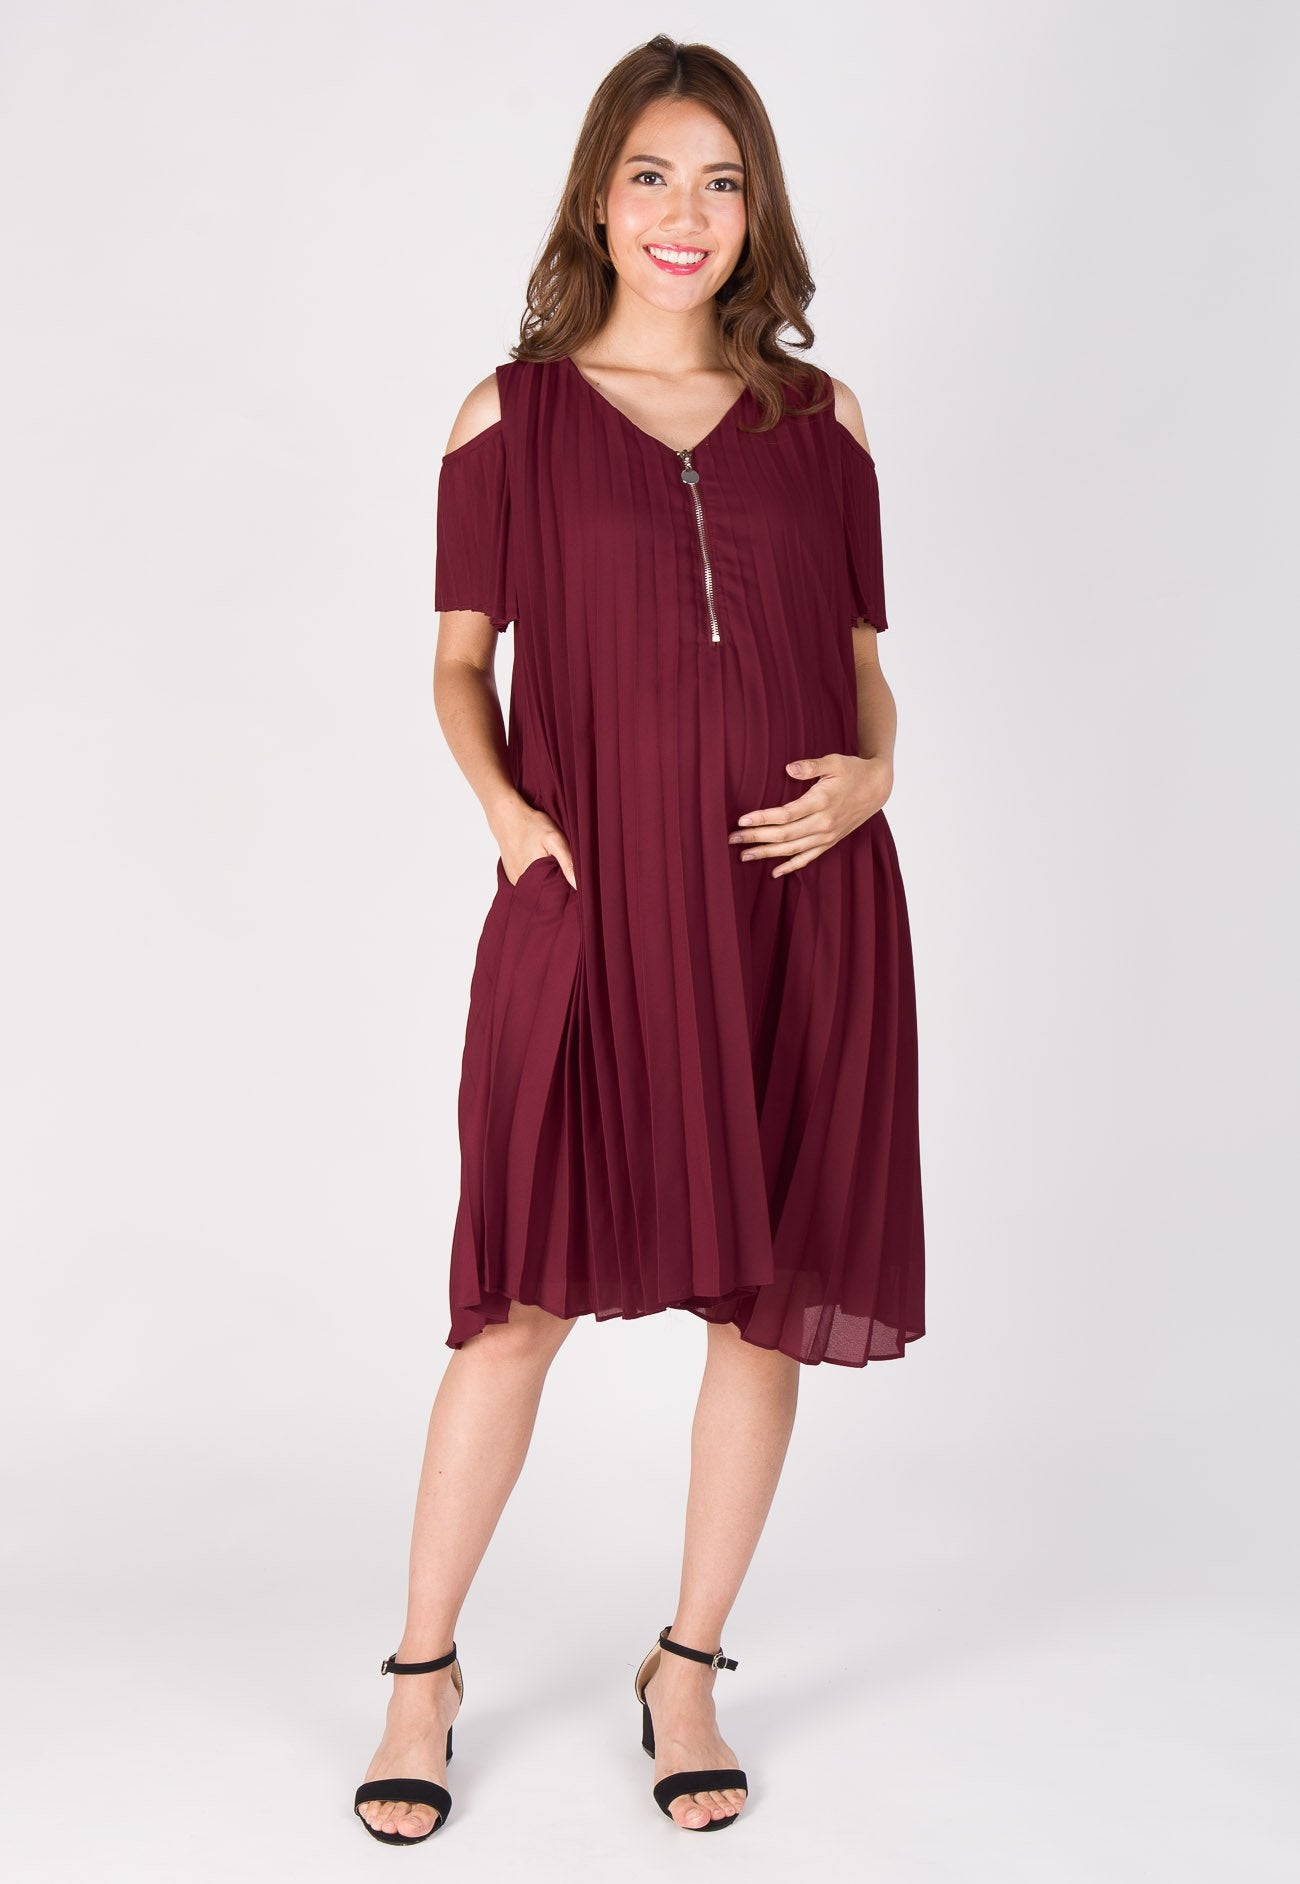 Cold Shoulder Lace Pleated Nursing Dress  by Jump Eat Cry - Maternity and nursing wear